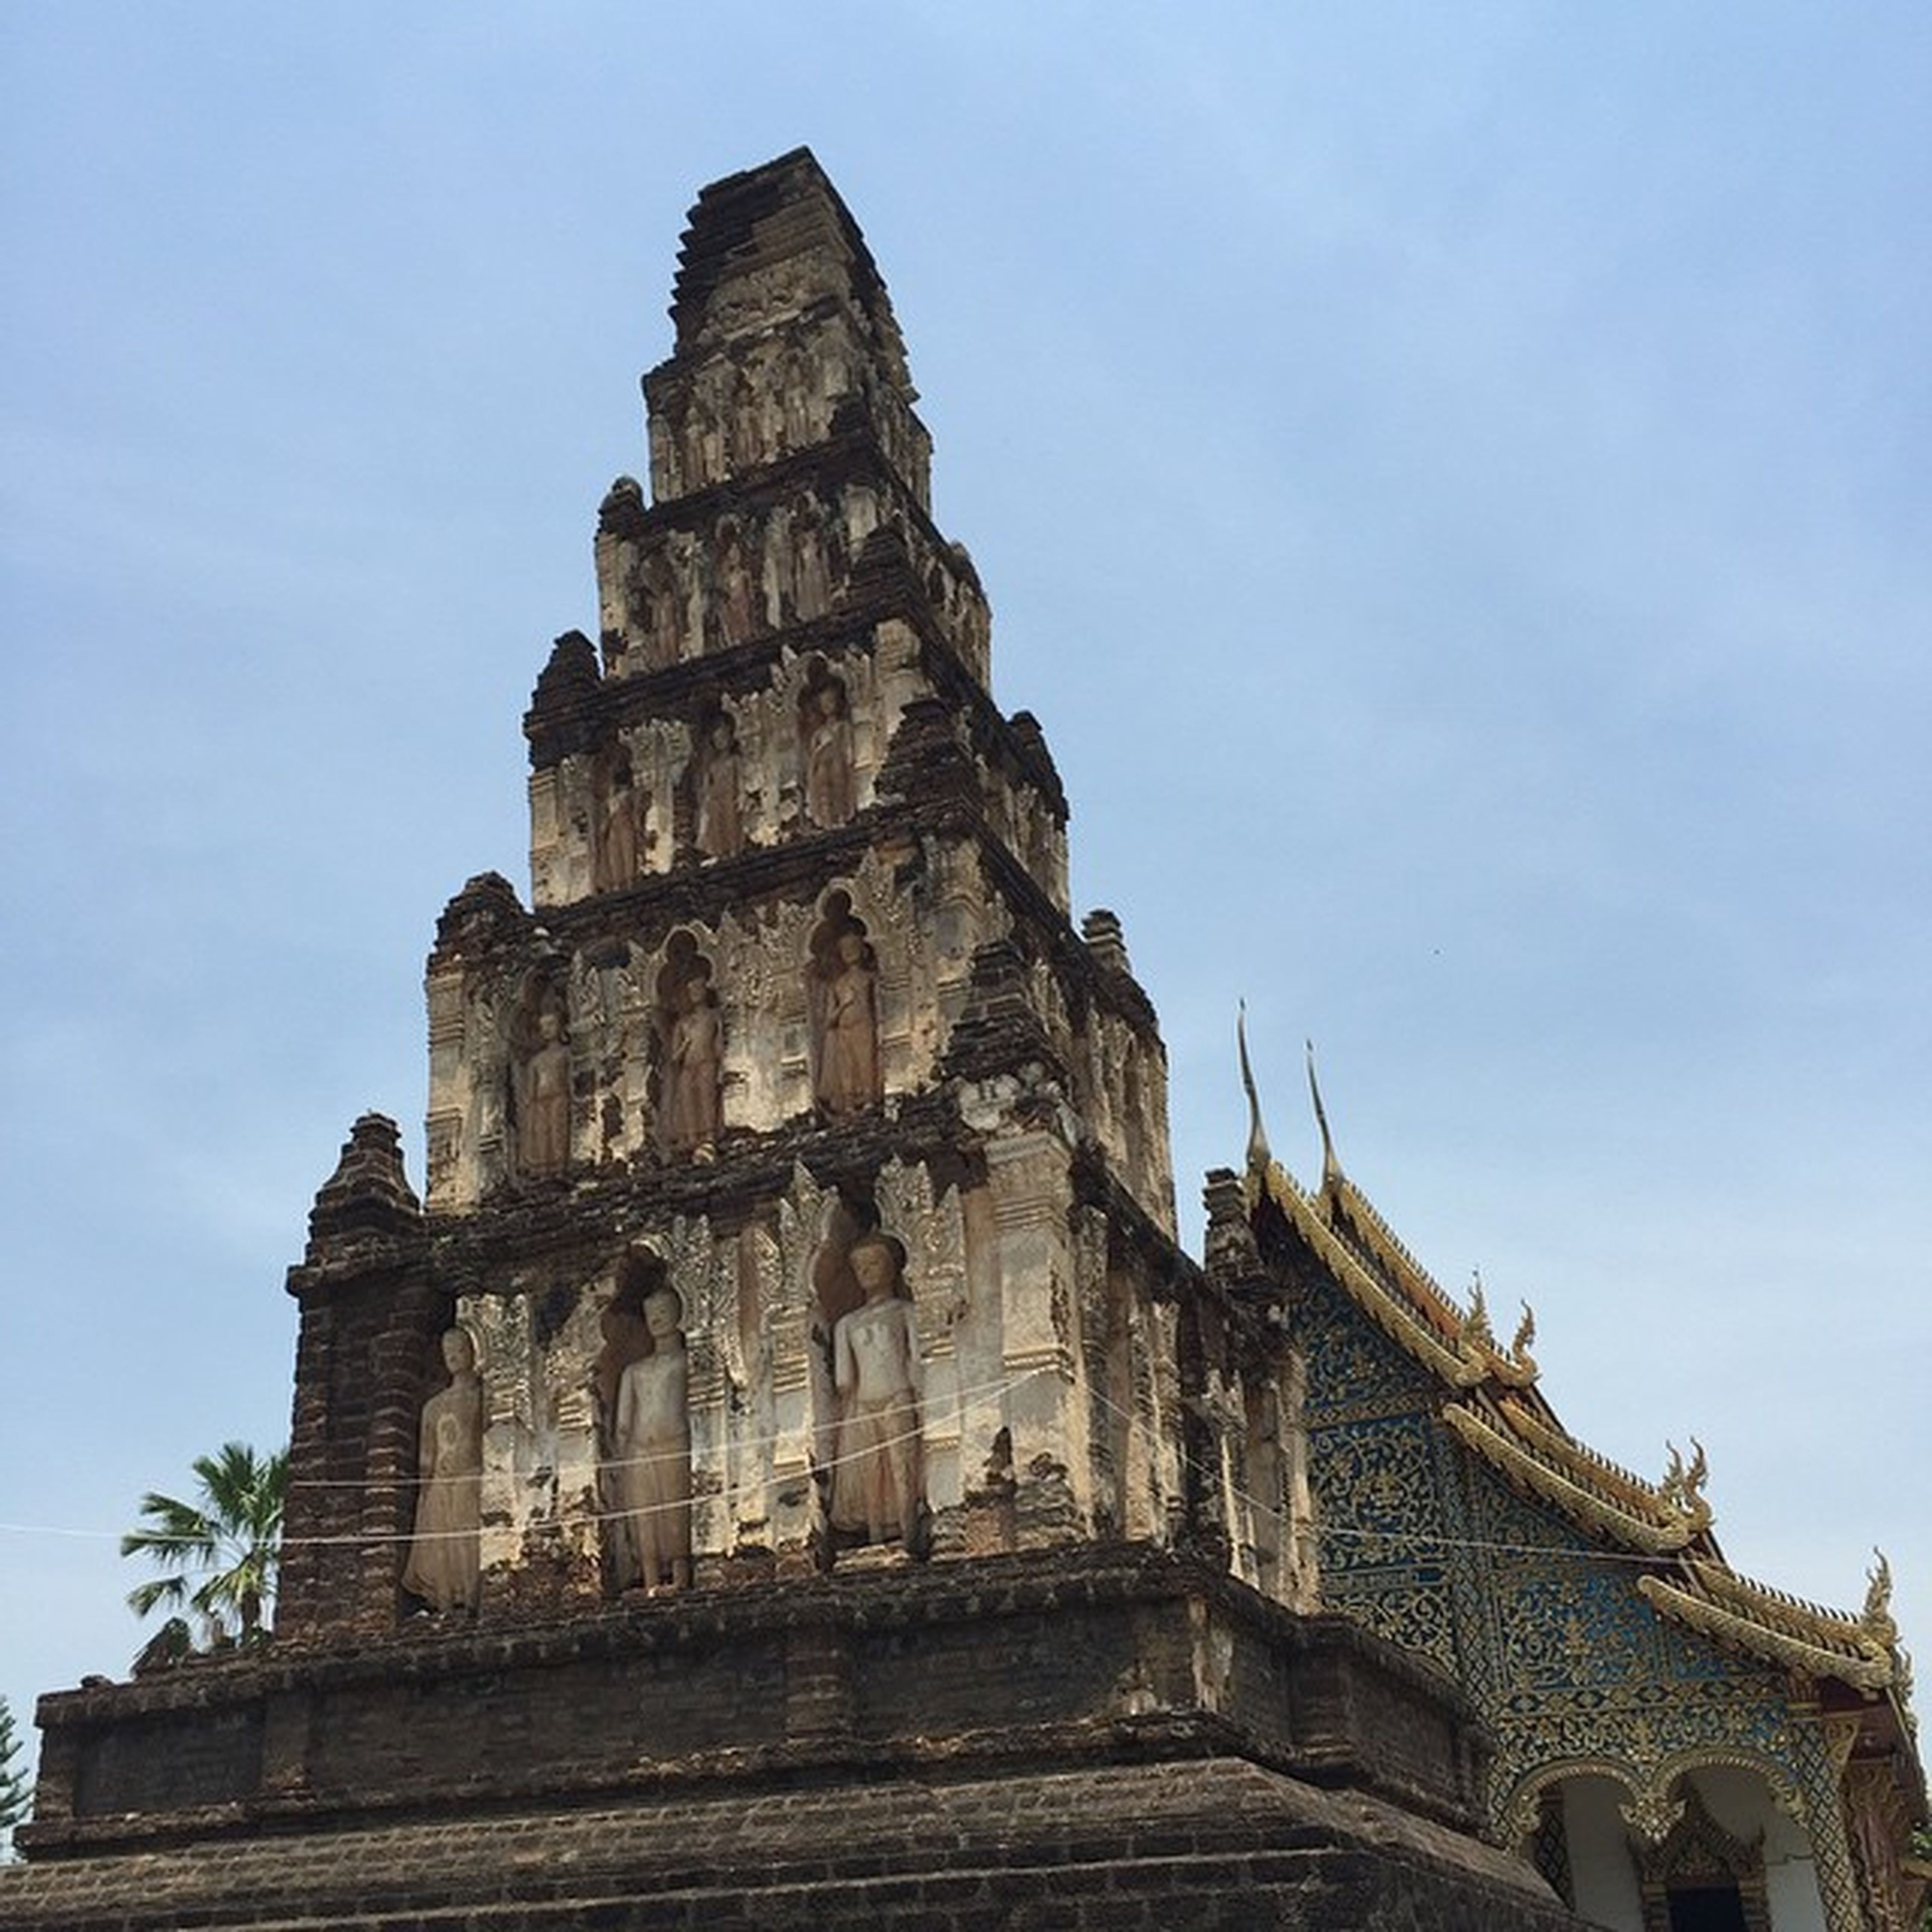 architecture, built structure, building exterior, history, low angle view, ancient, sky, famous place, the past, old, ancient civilization, old ruin, travel destinations, travel, place of worship, religion, tourism, temple - building, international landmark, day